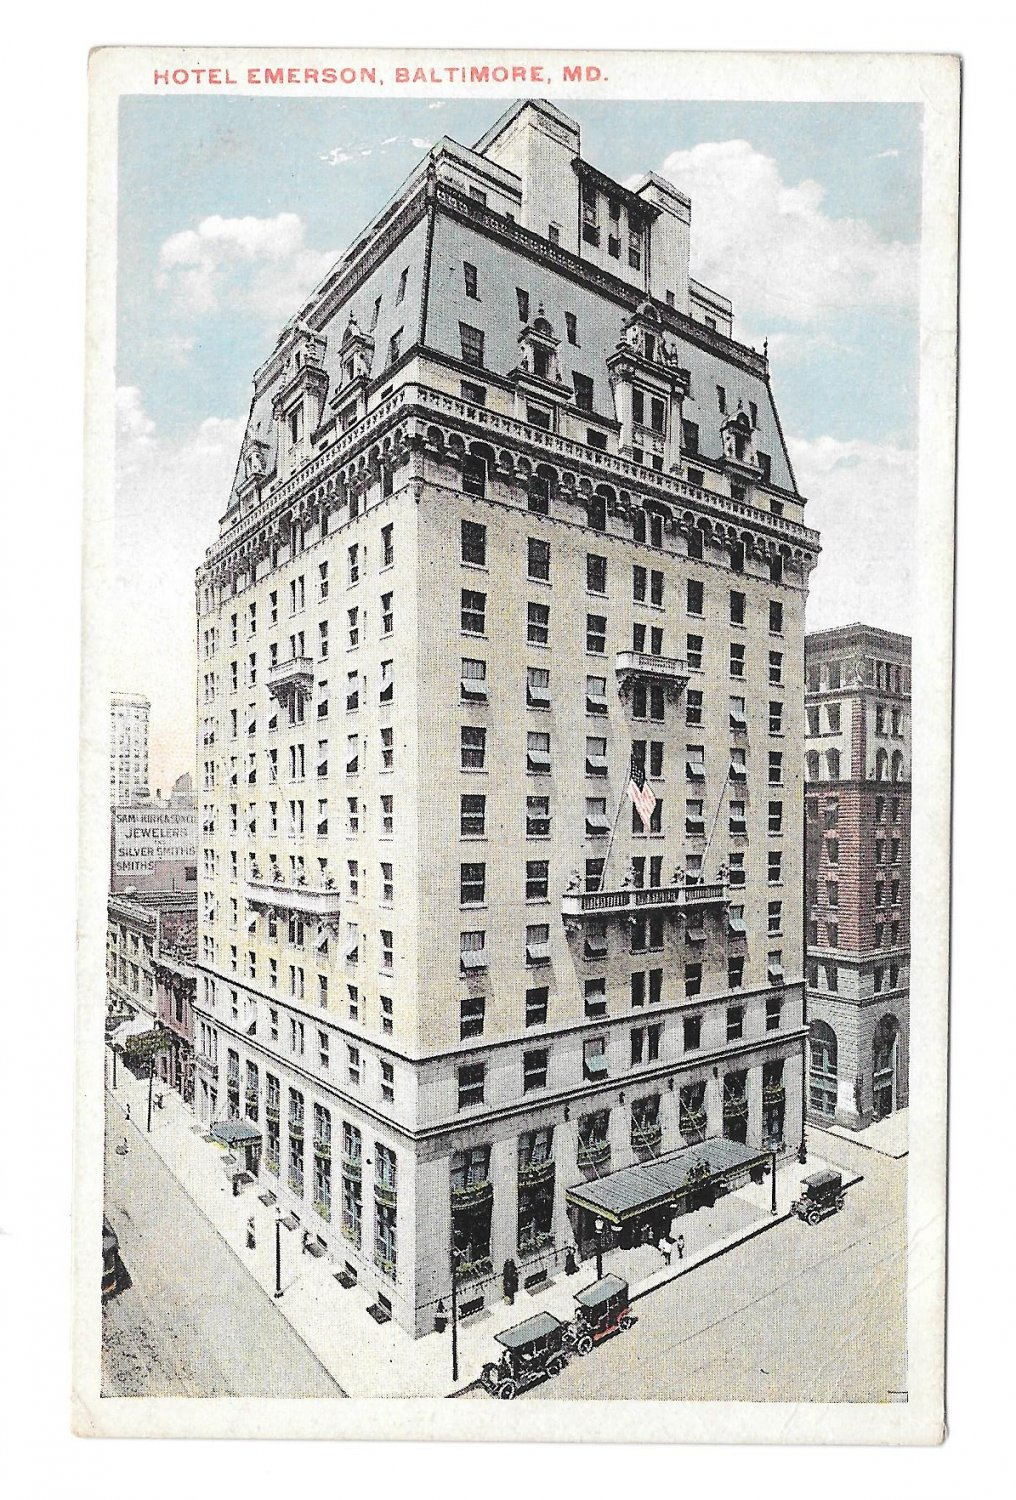 Maryland Hotel Emerson Baltimore MD Vintage Union News Postcard